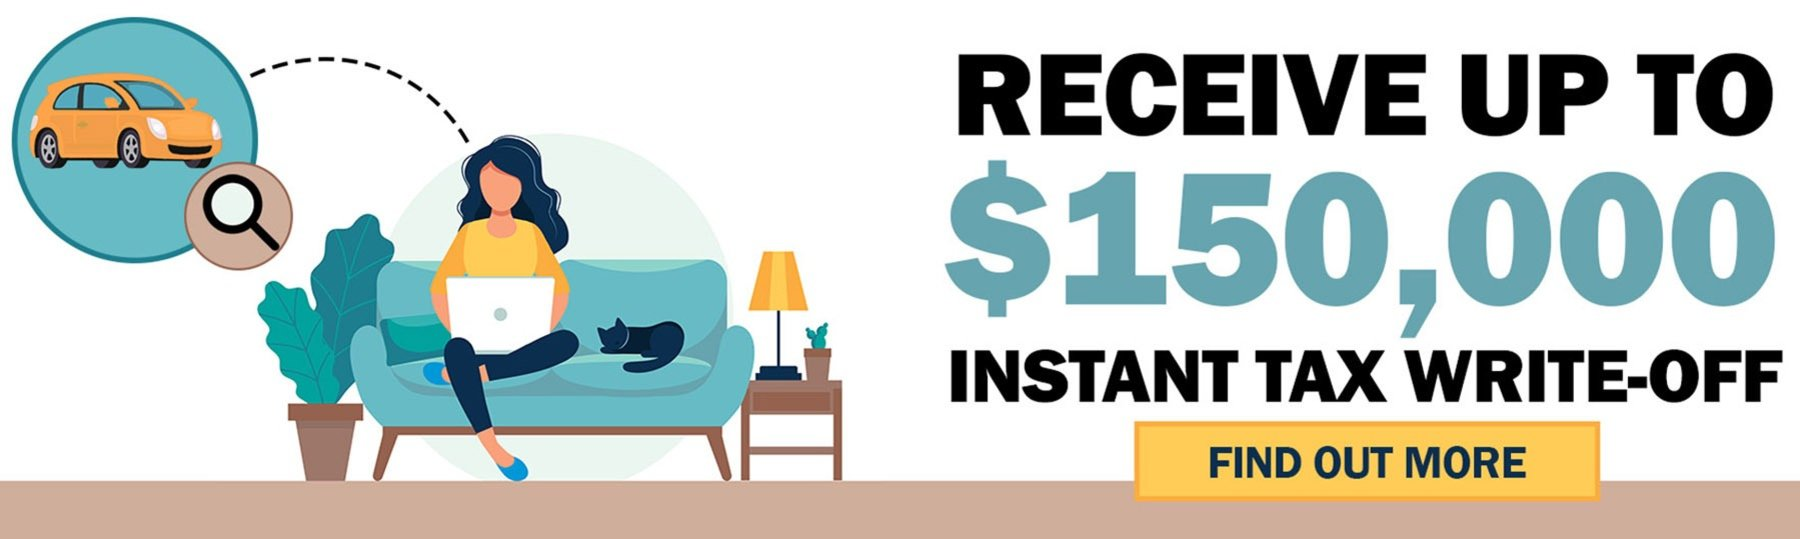 Reynella Mazda - Receive up to $150,000 Instant Tax Write-off